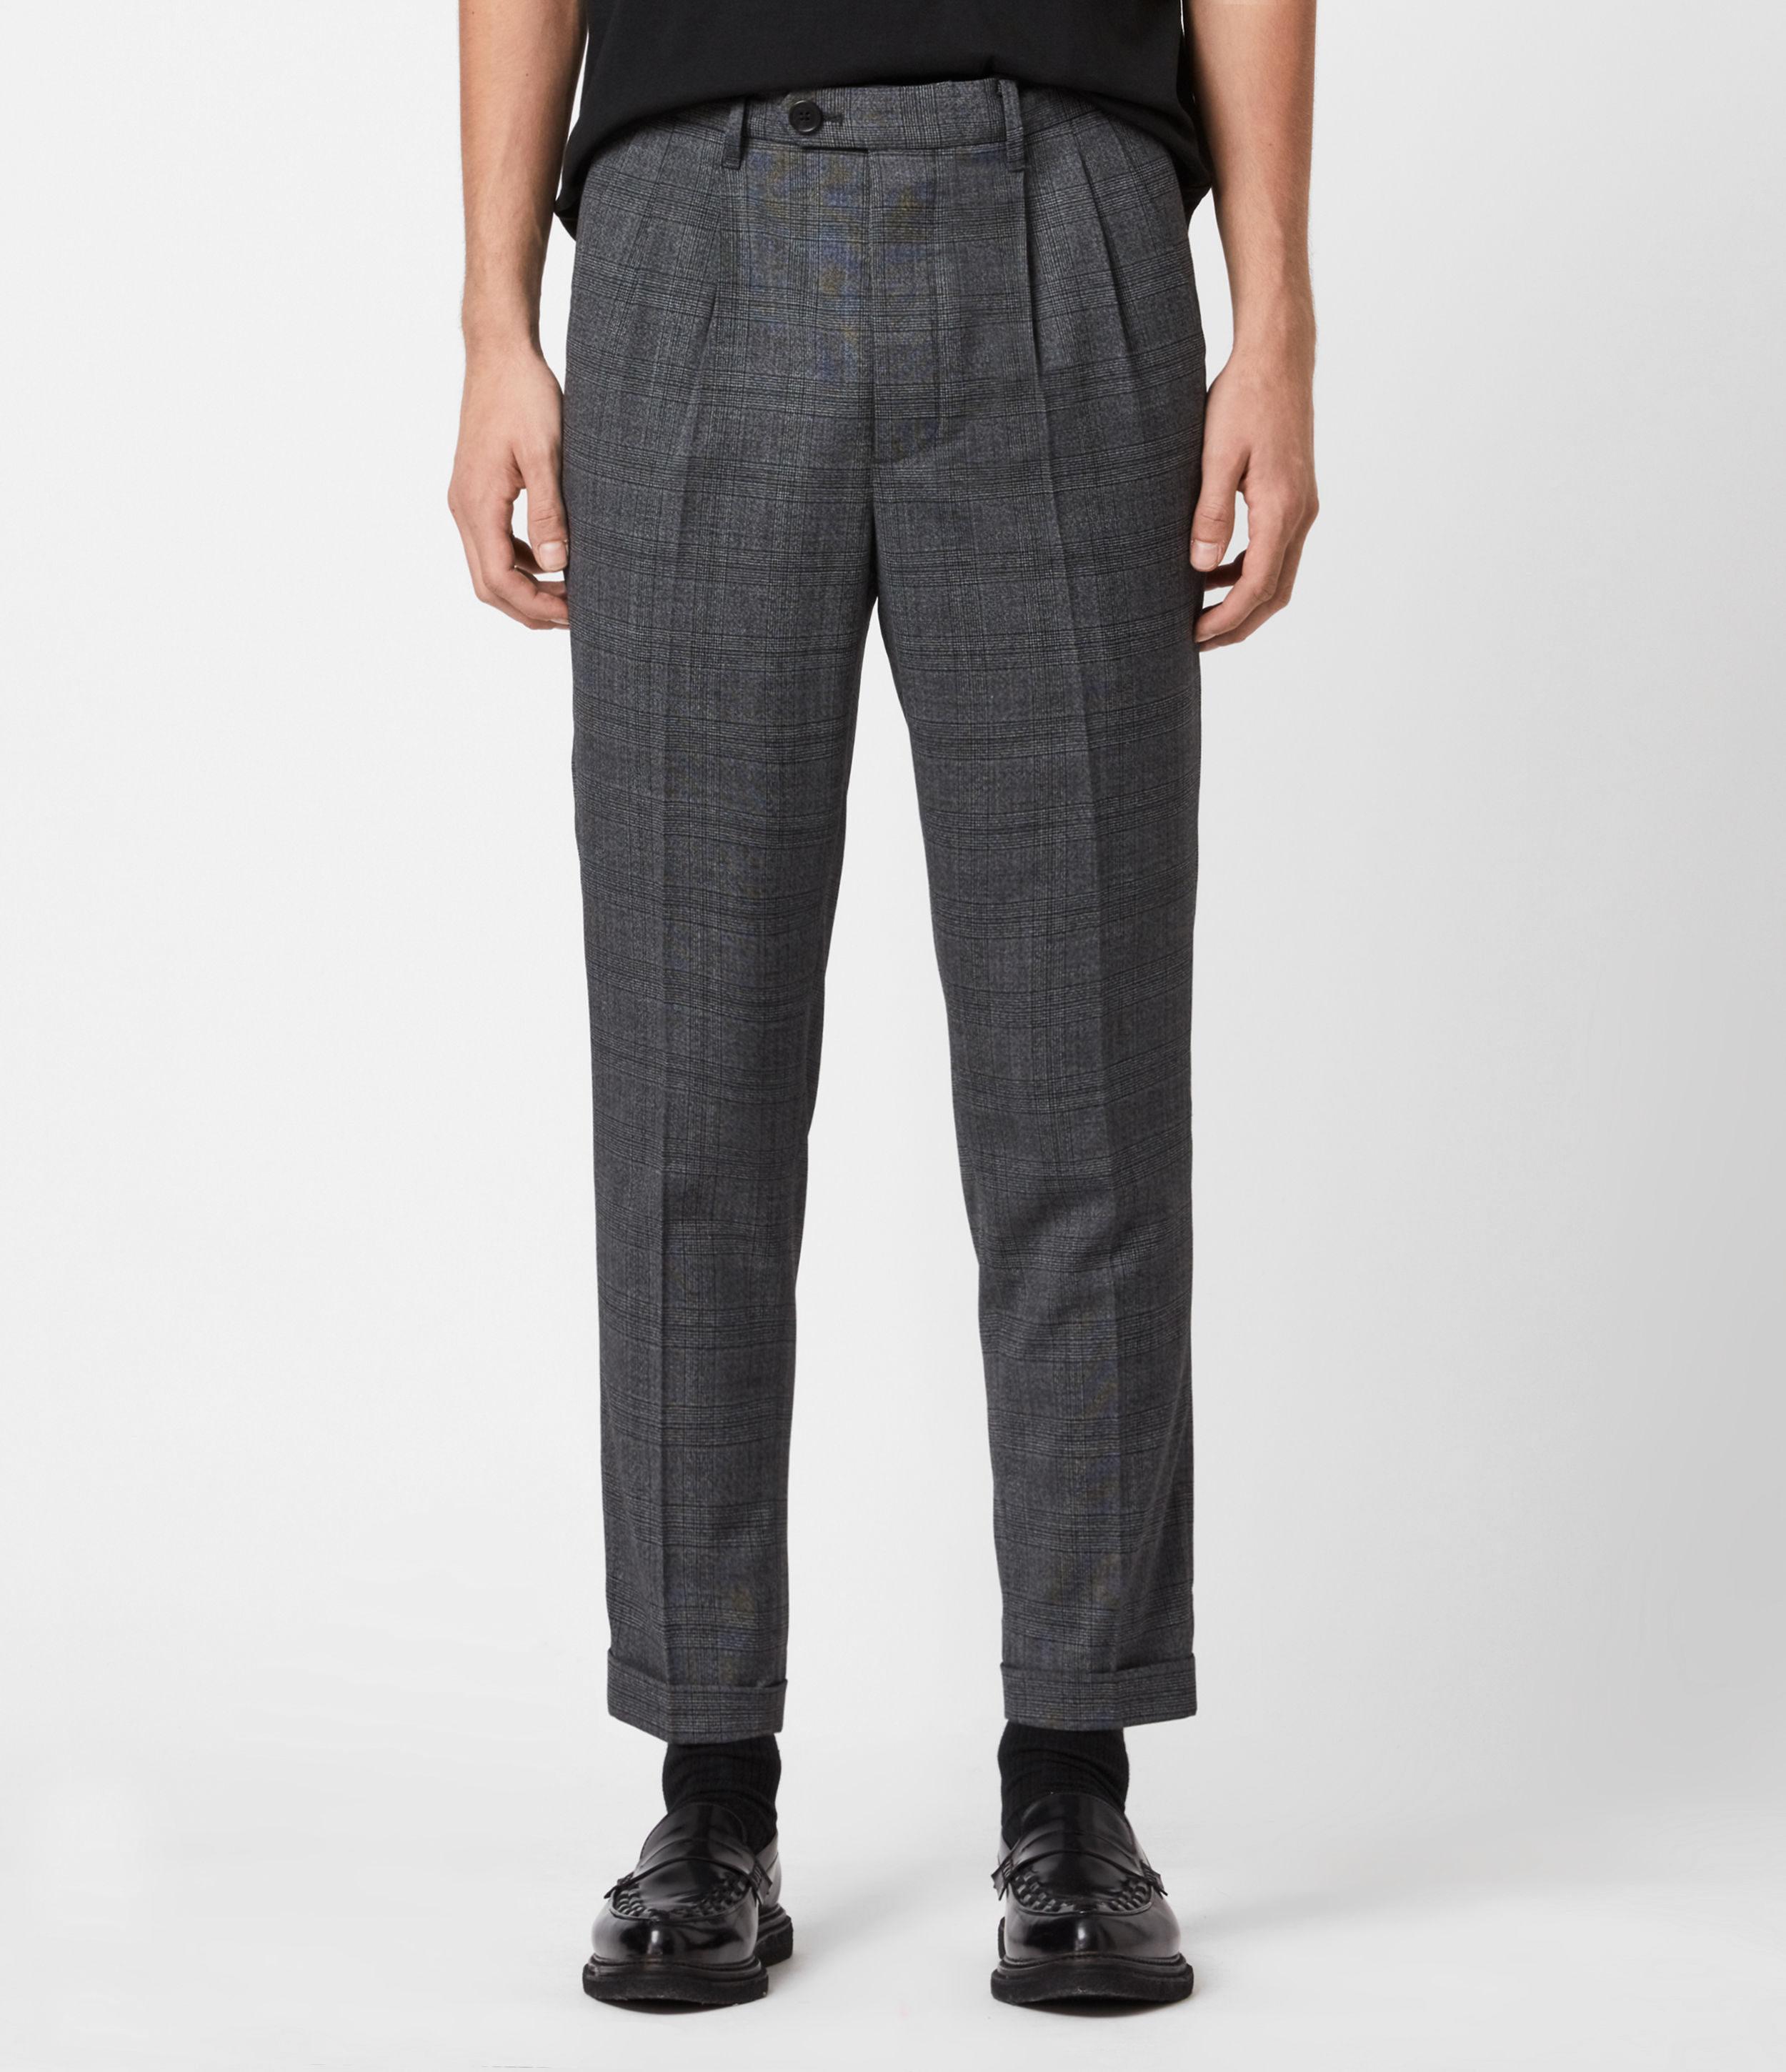 AllSaints Mens Batalha Cropped Slim Trousers, Charcoal, Size: 36